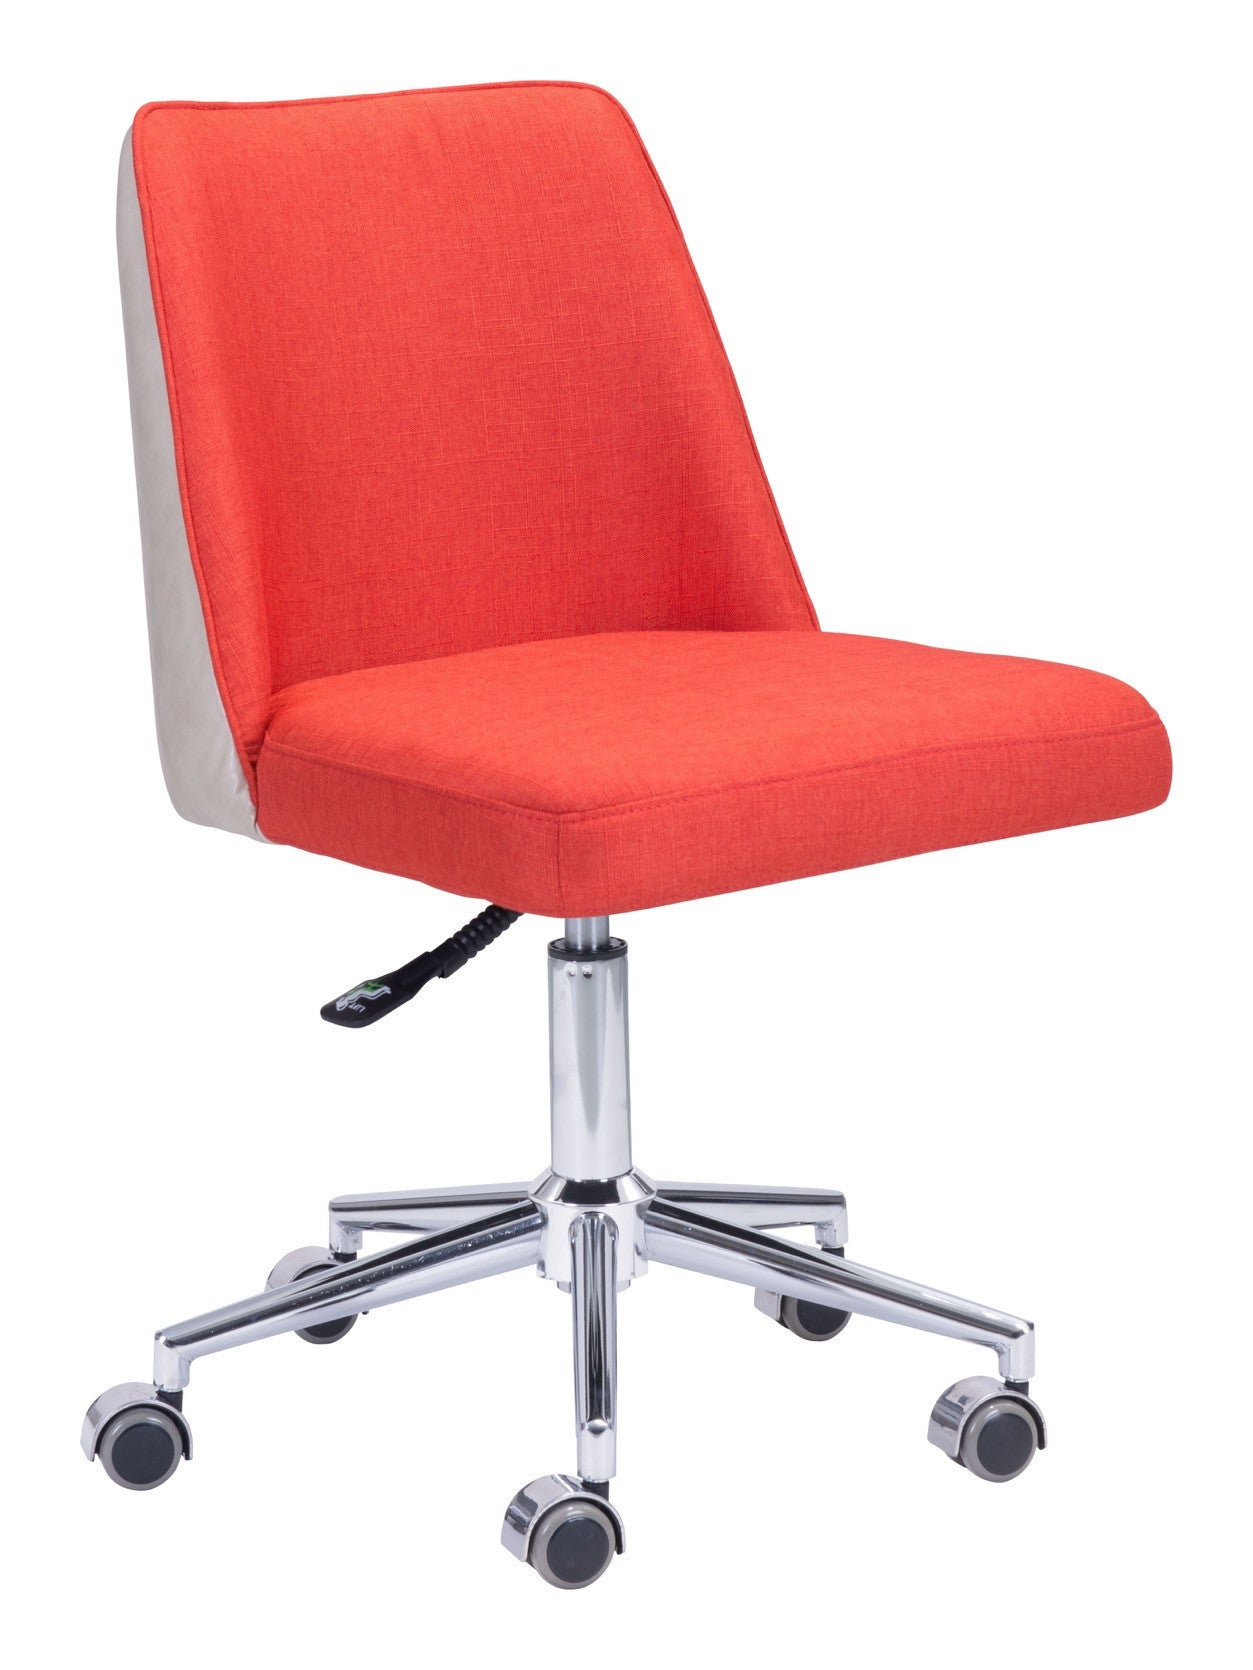 Season fice Chair in Orange Fabric with Beige Leatherette Back